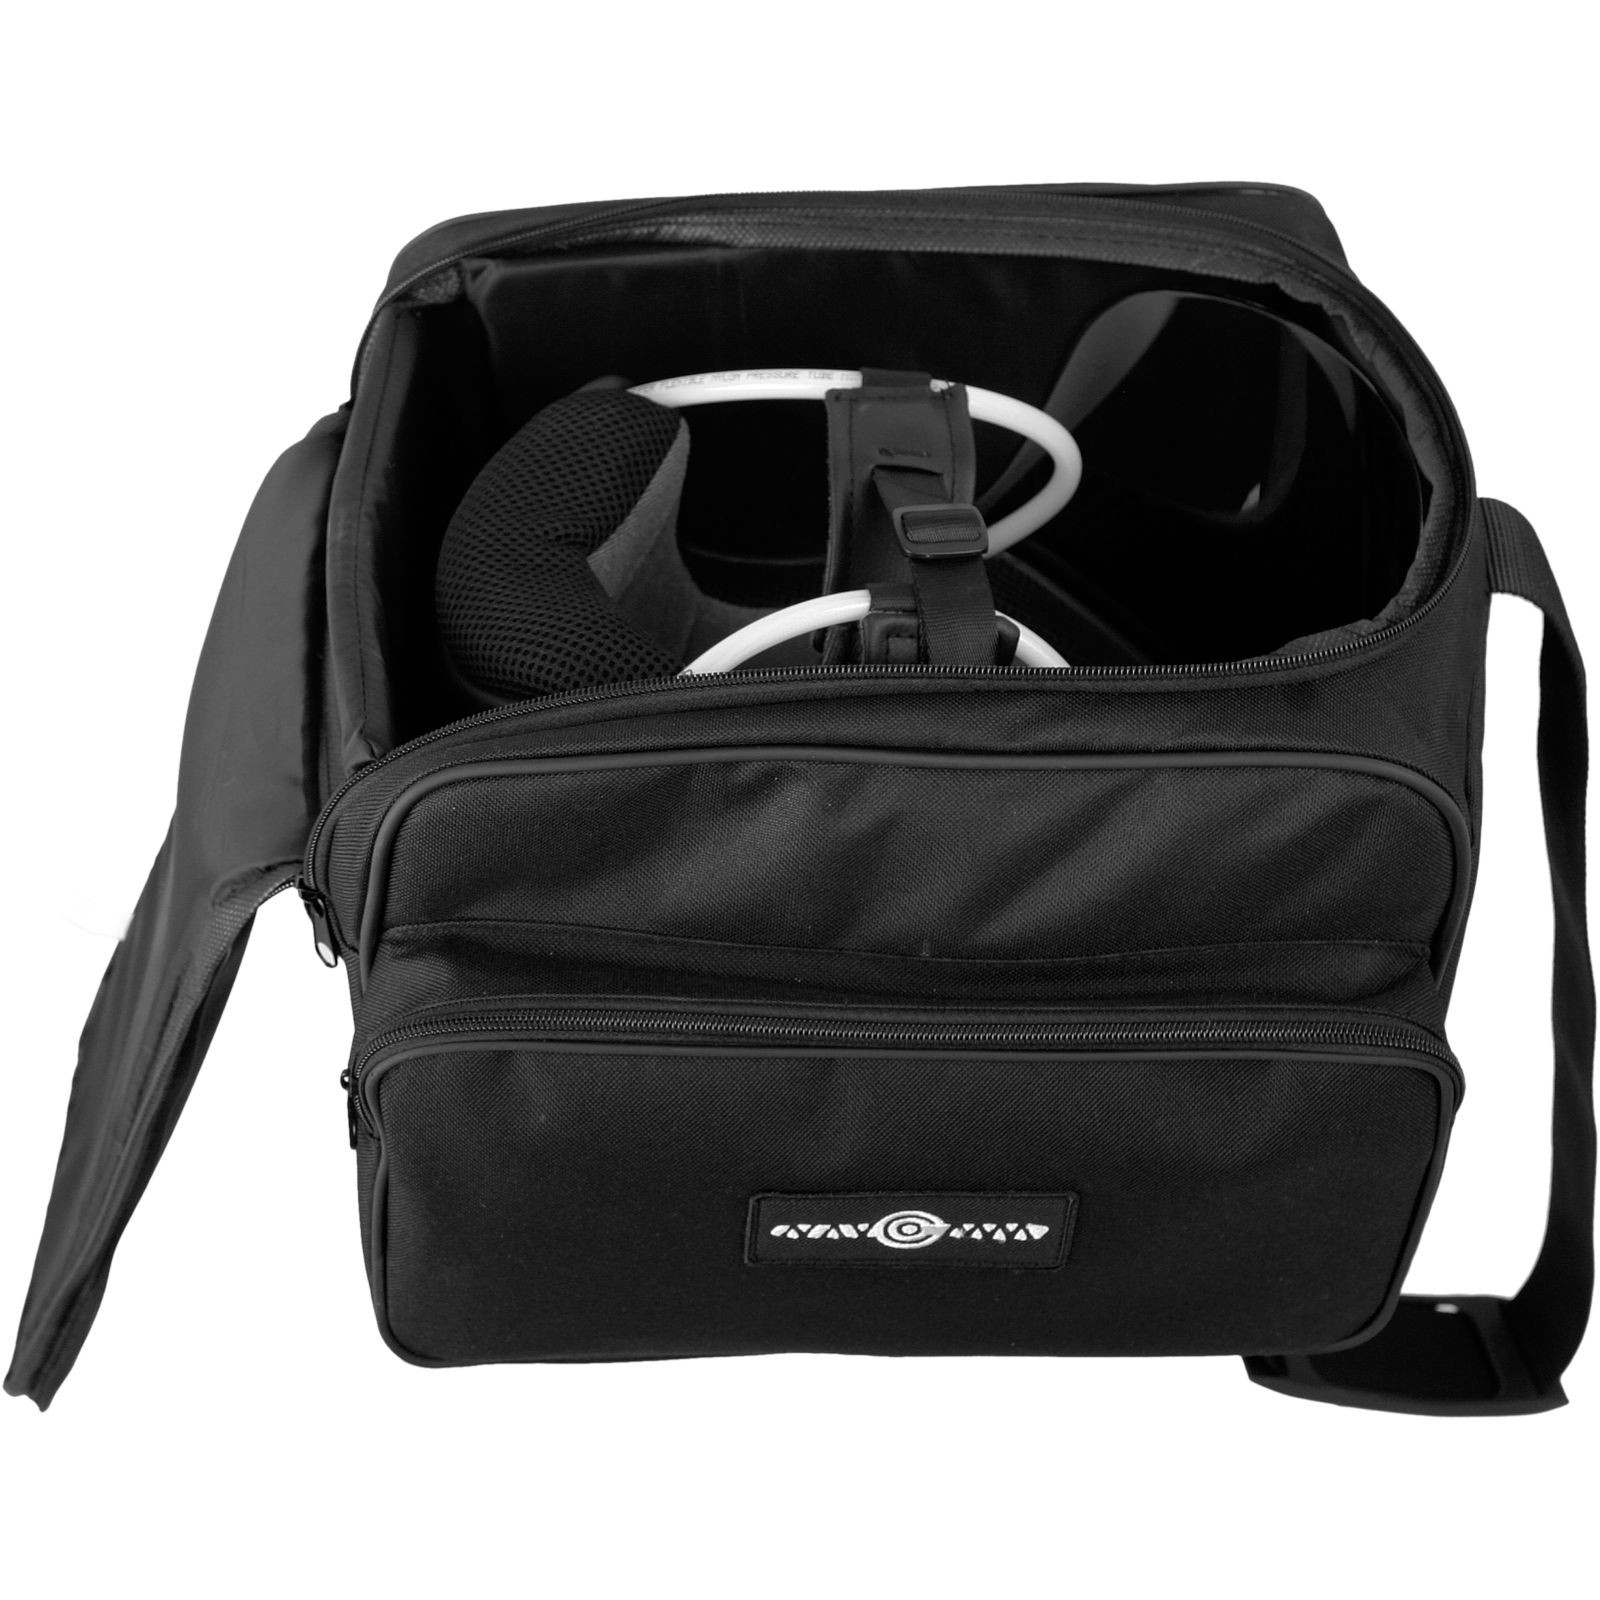 TRANSPORT BAG FOR A PPG HELMET